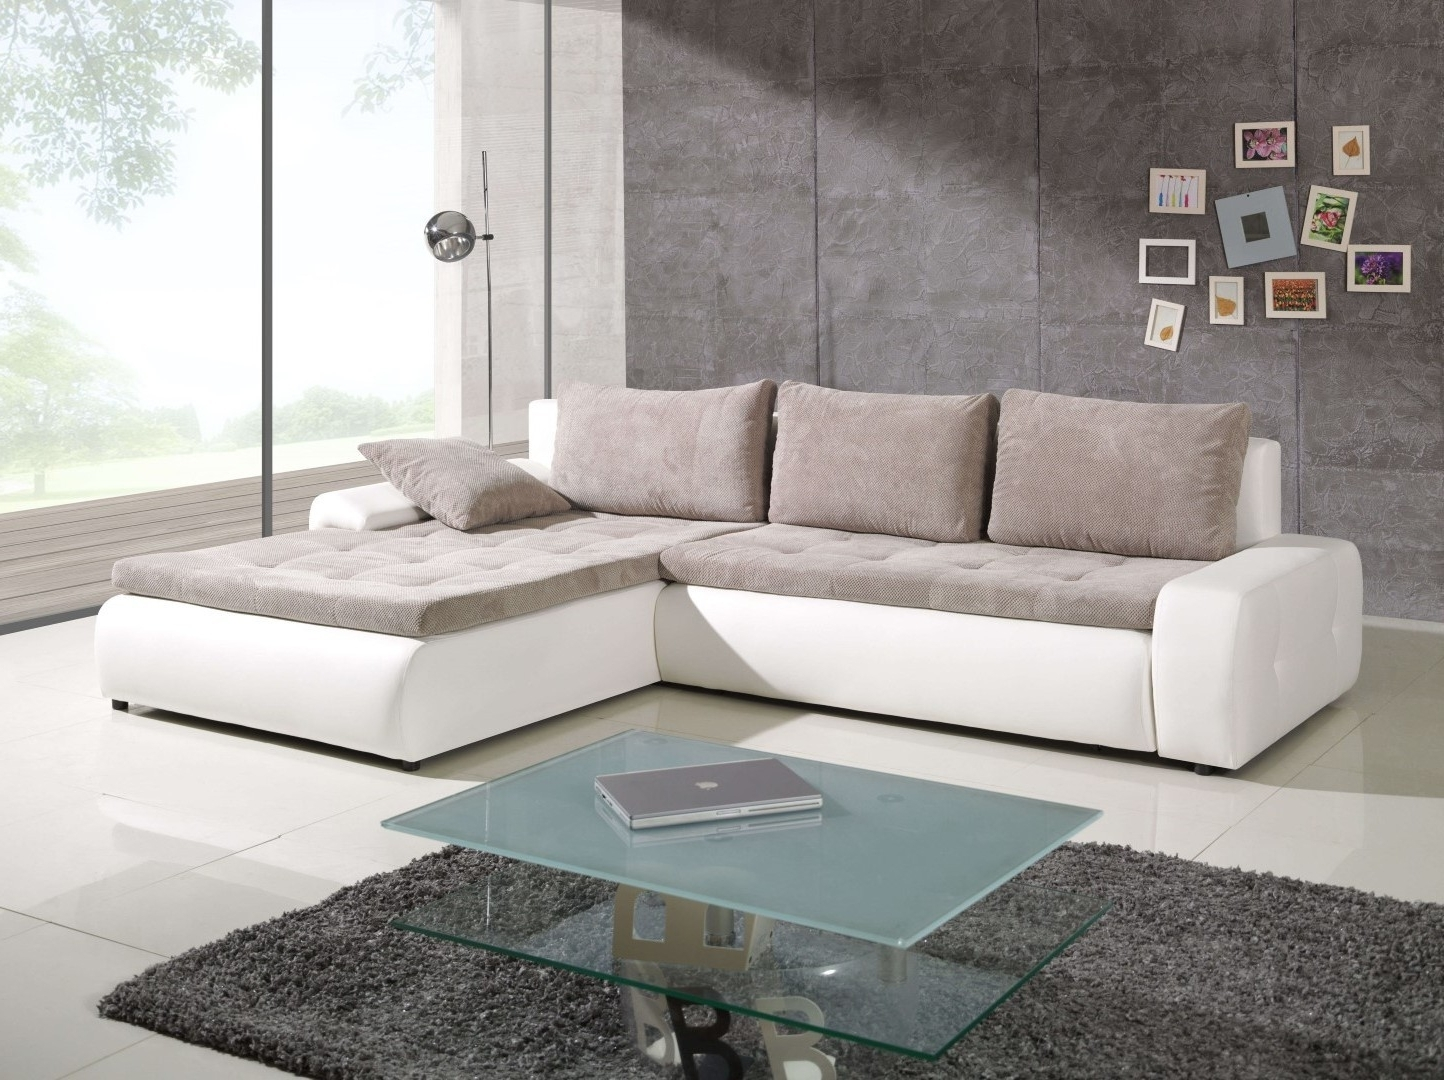 Sectional Sofas With Sleeper Inside Favorite Shop Galileo Sectional Sleeper Sofa With Storage Universal (View 8 of 20)